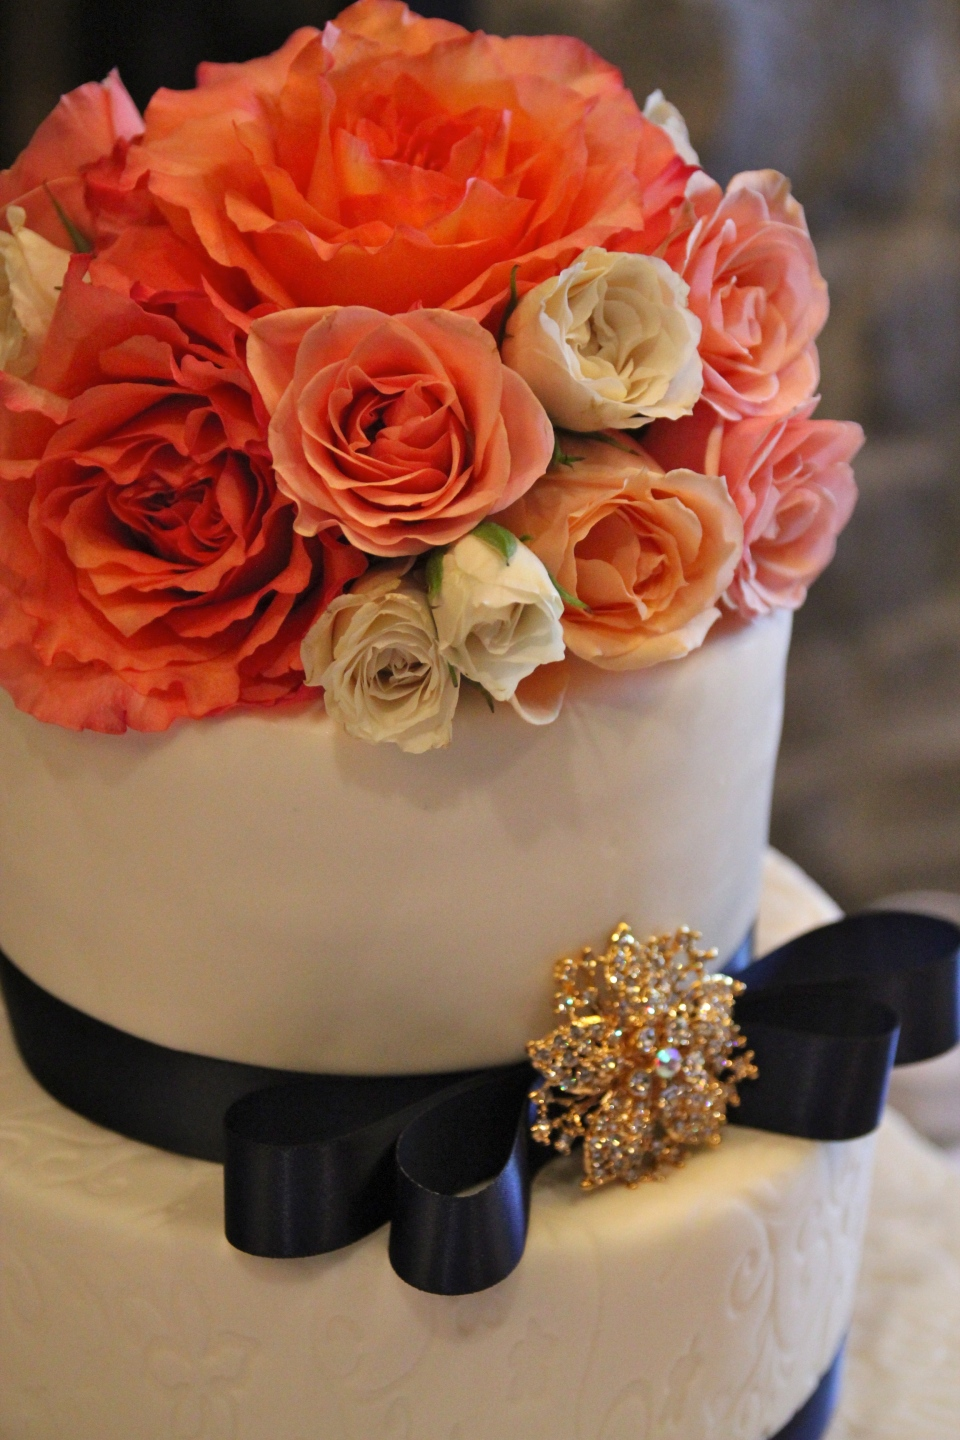 Cake topper of fresh roses